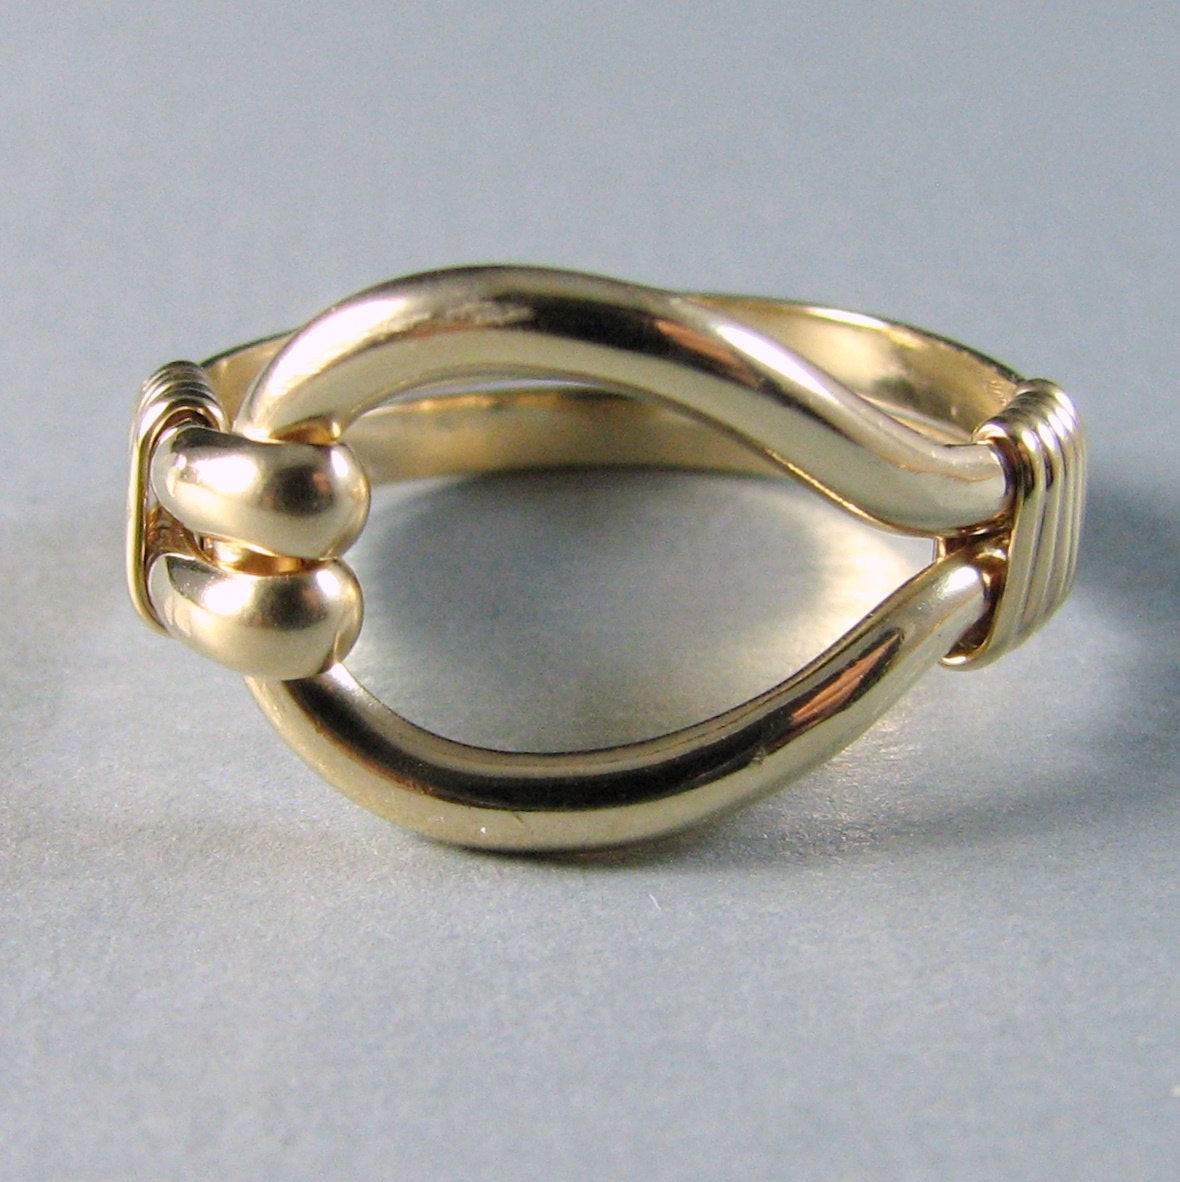 14k Gold Filled 14k GF Loop Ring Band Custom Sized